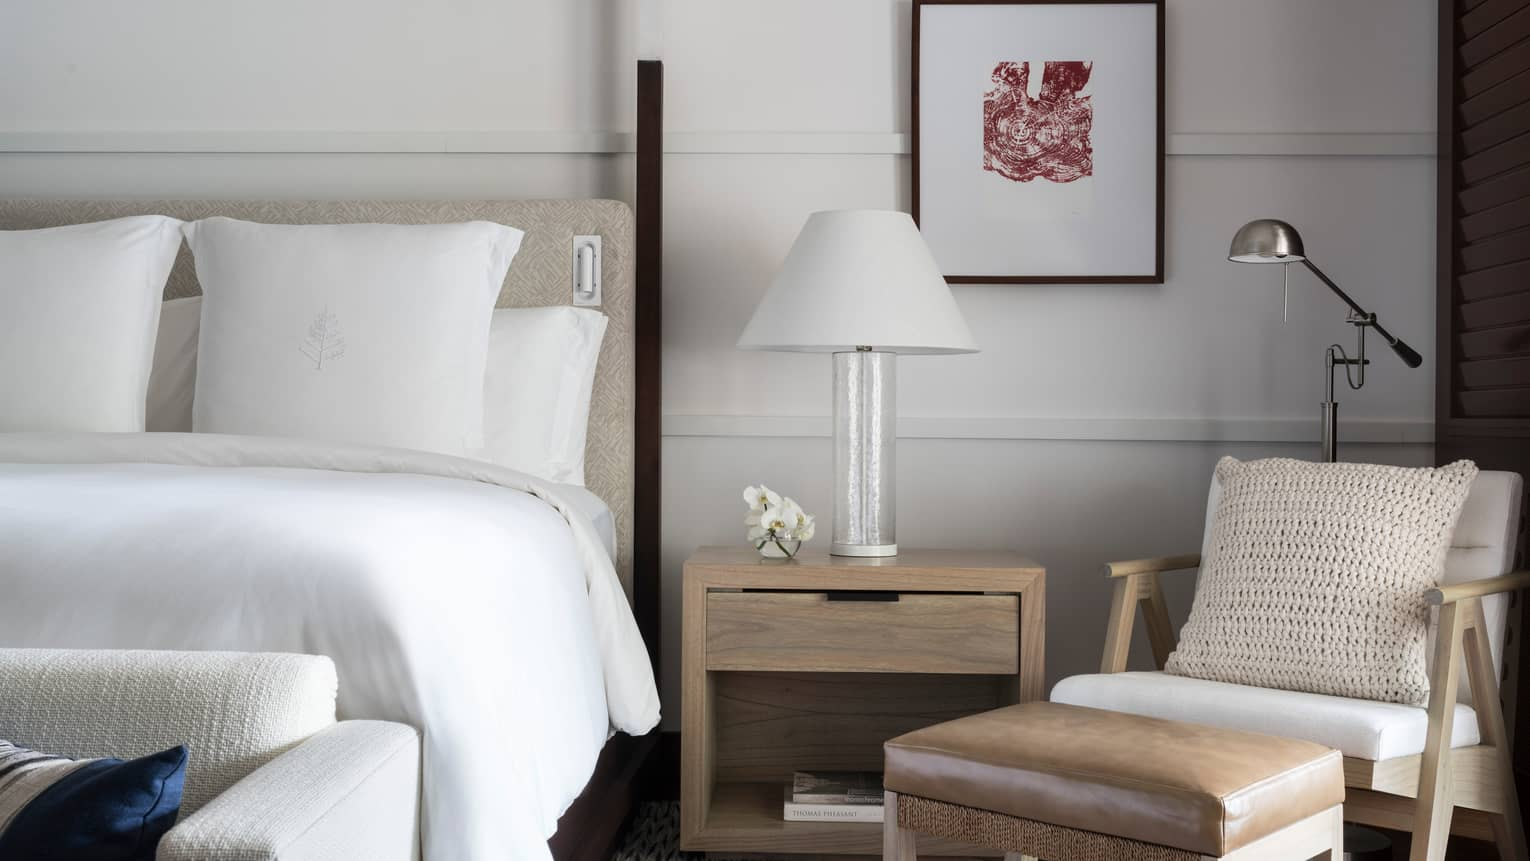 Close-up of white hotel bed, nightstand with white lamp, modern armchair and leather footstool